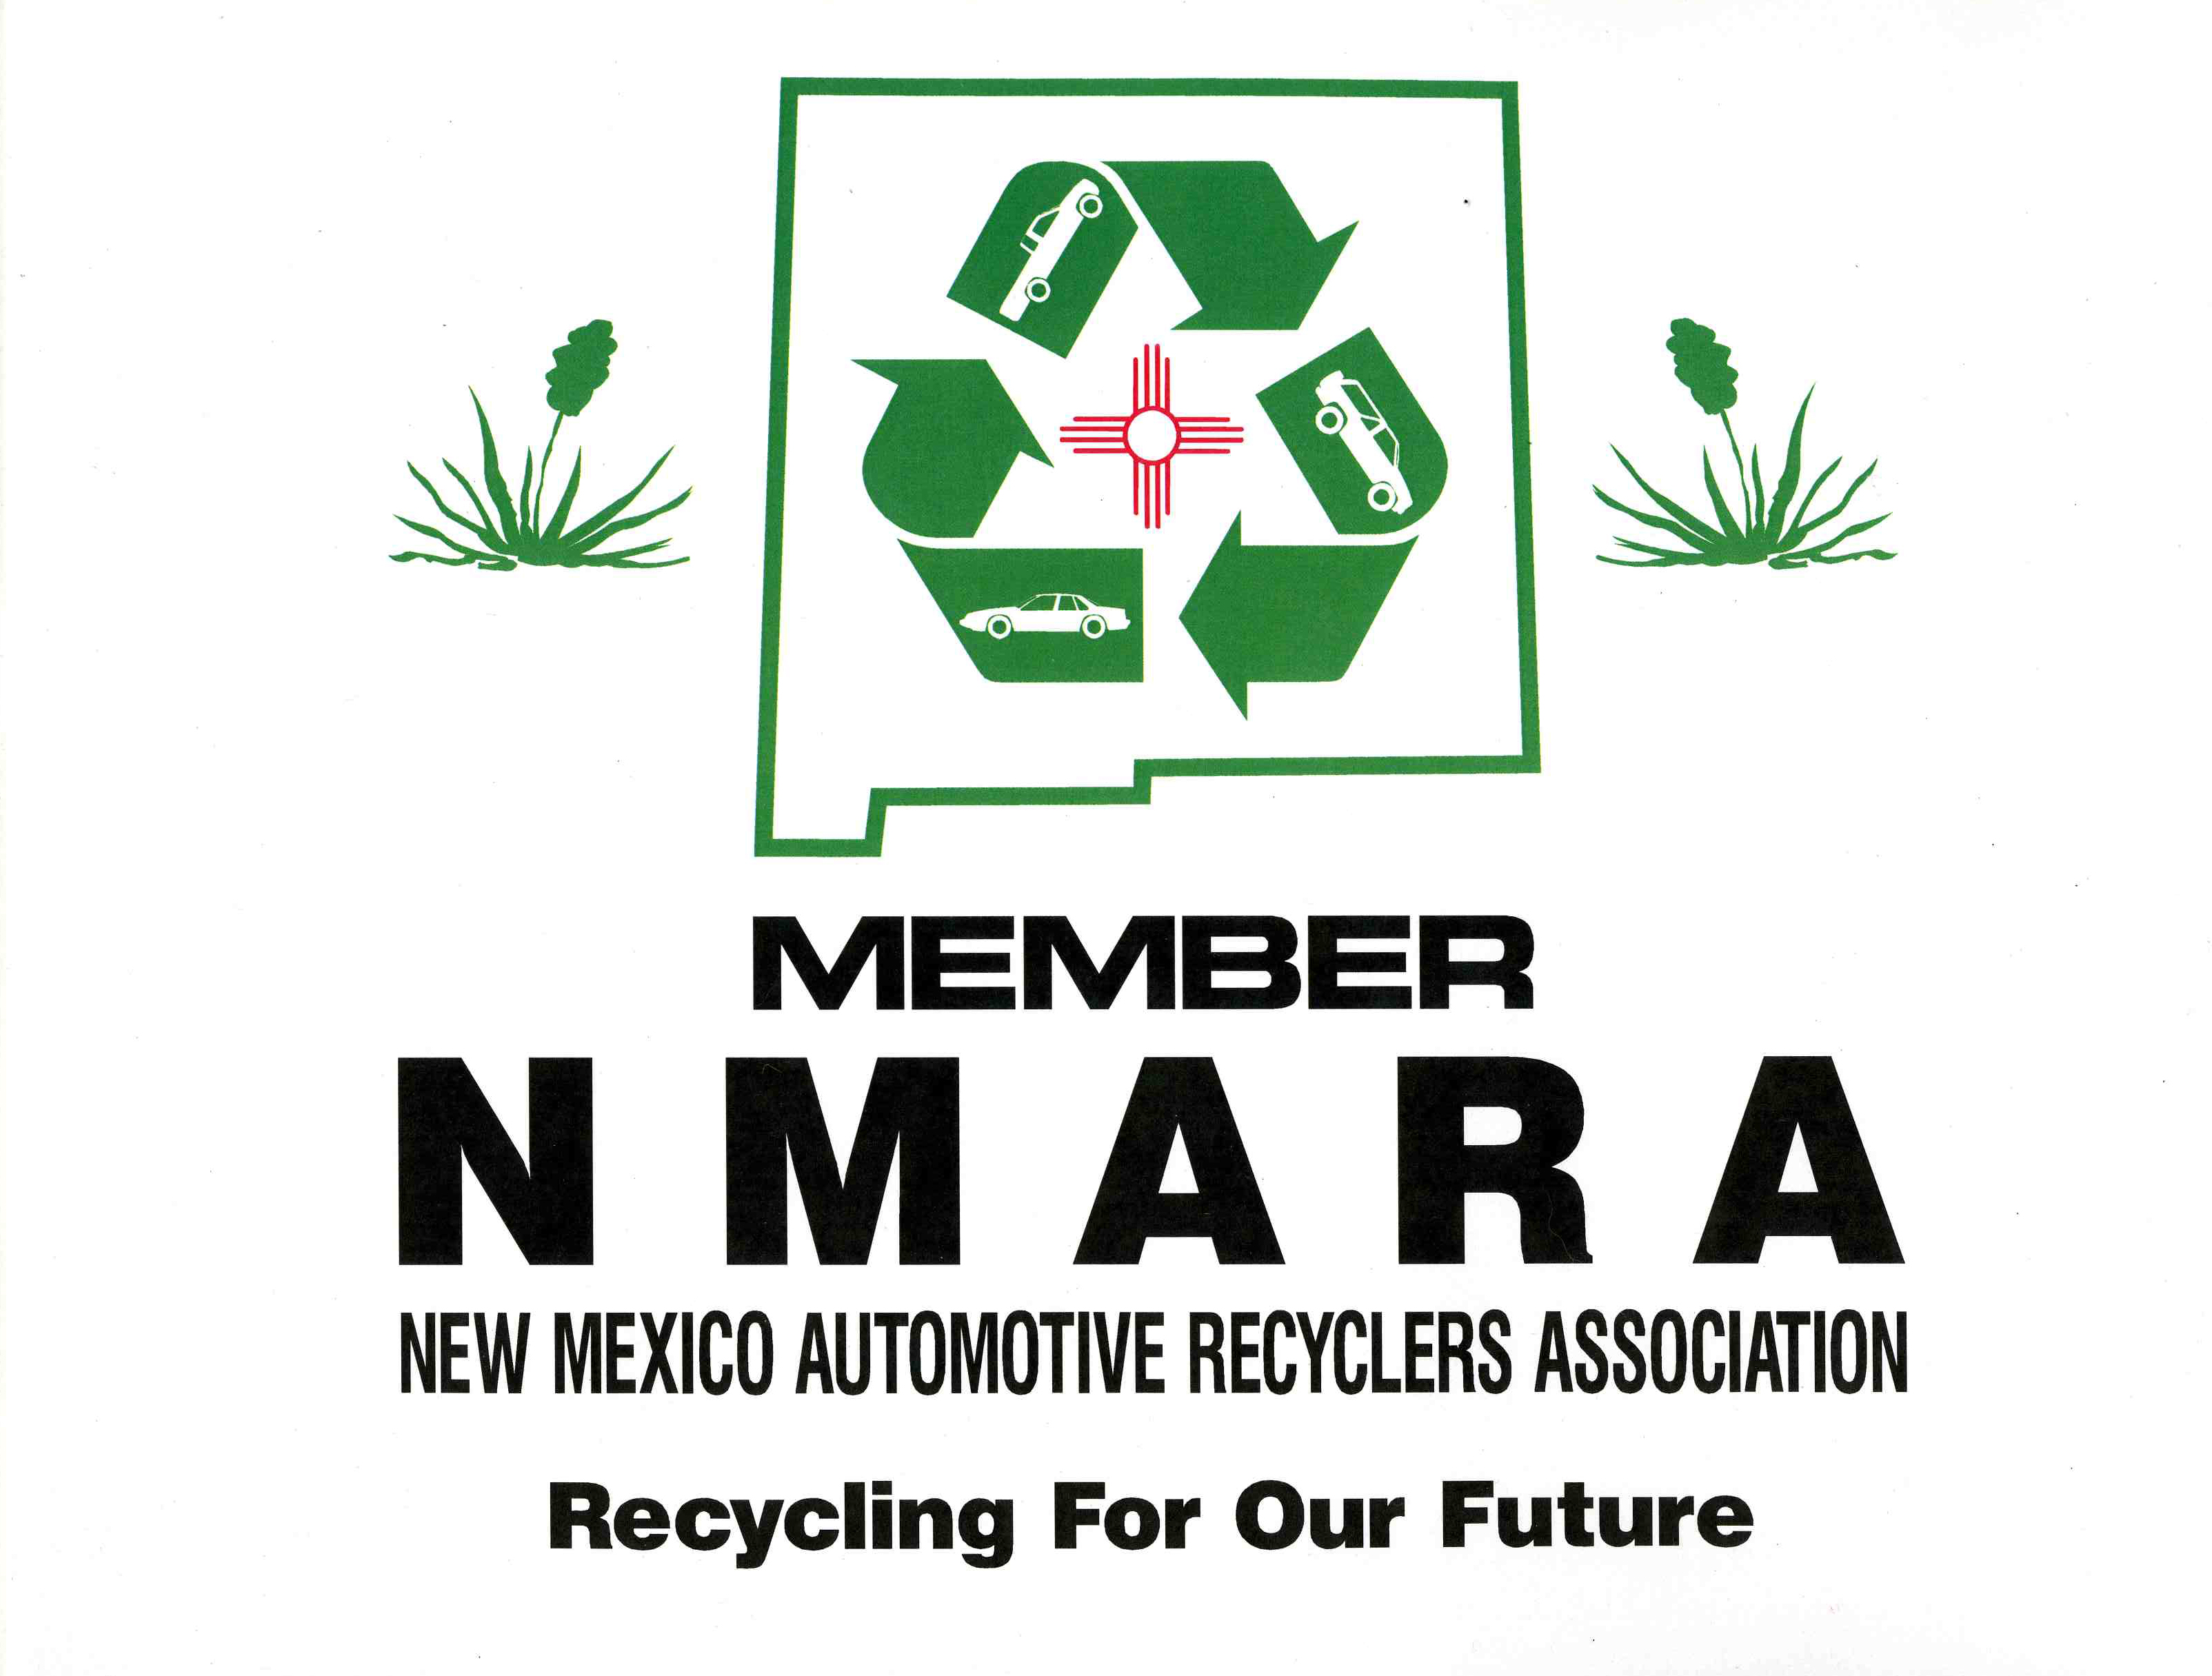 New Mexico Automotive Recyclers Association